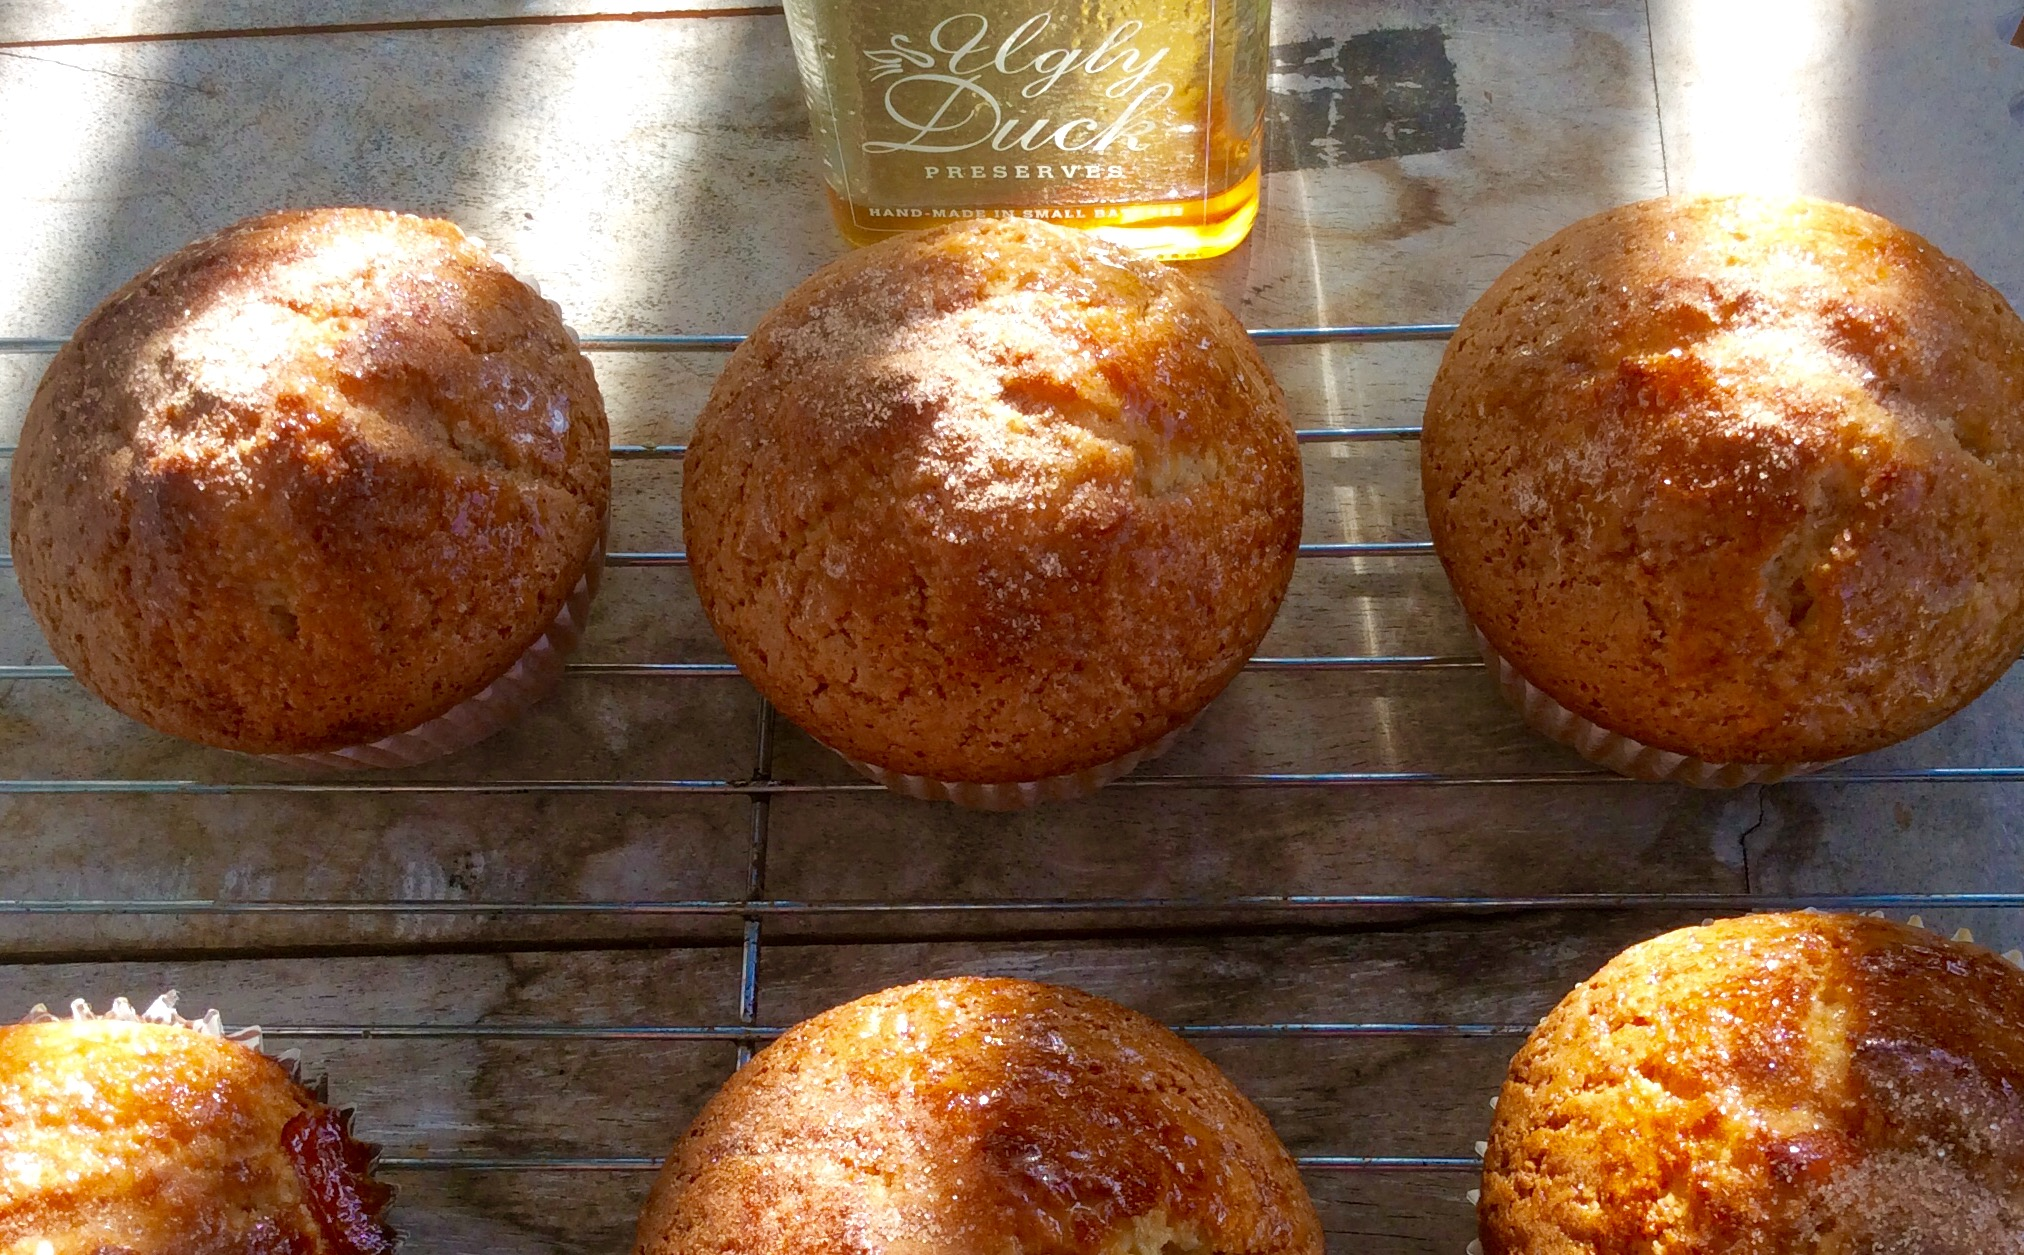 Freshly baked Orange Marmalade Muffins with award winning Ugly Duck Preserves marmalade